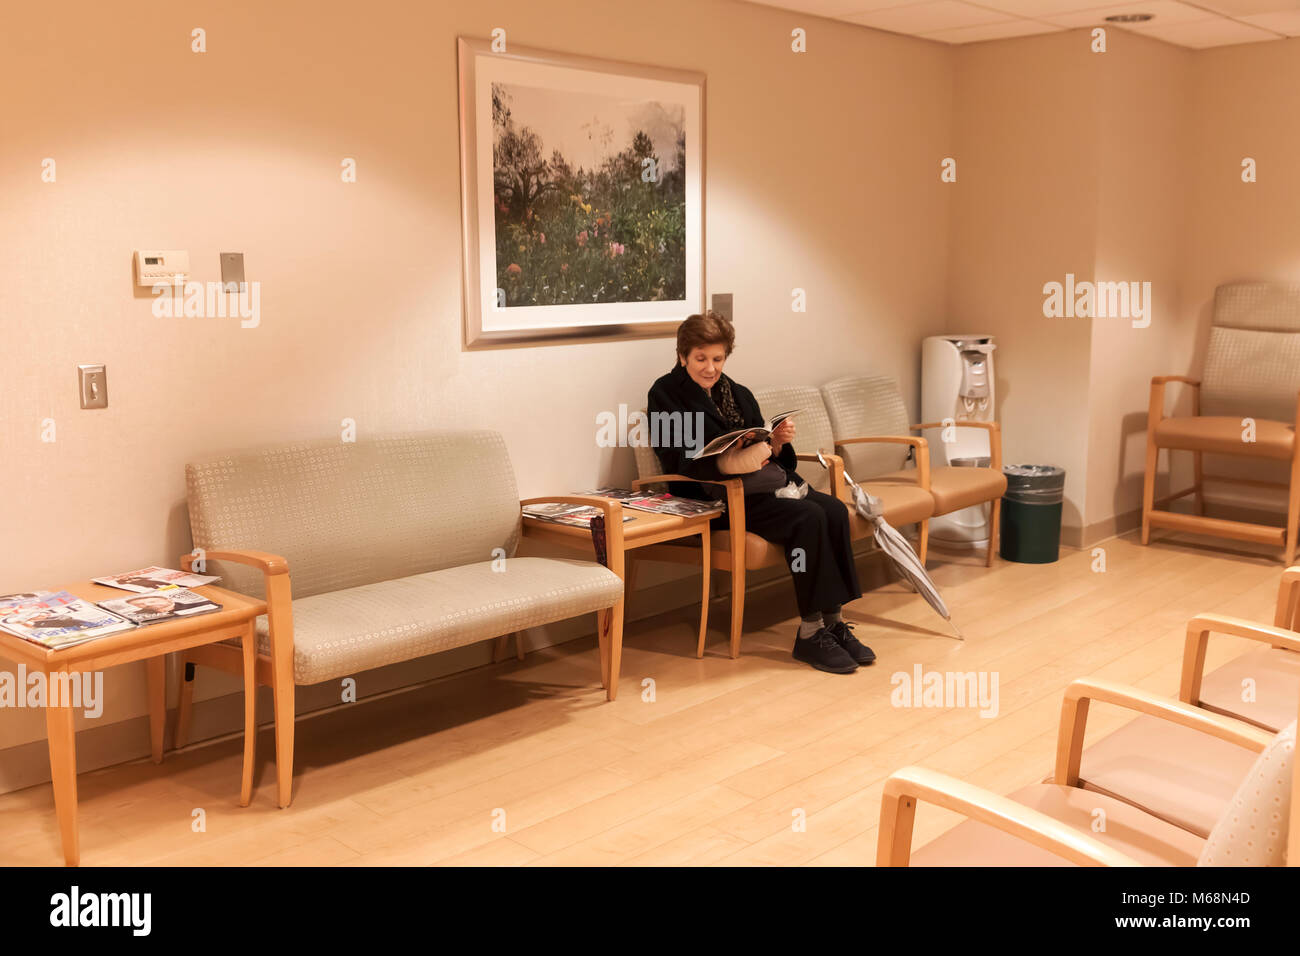 Female sitting in the waiting room of a doctor's office. - Stock Image